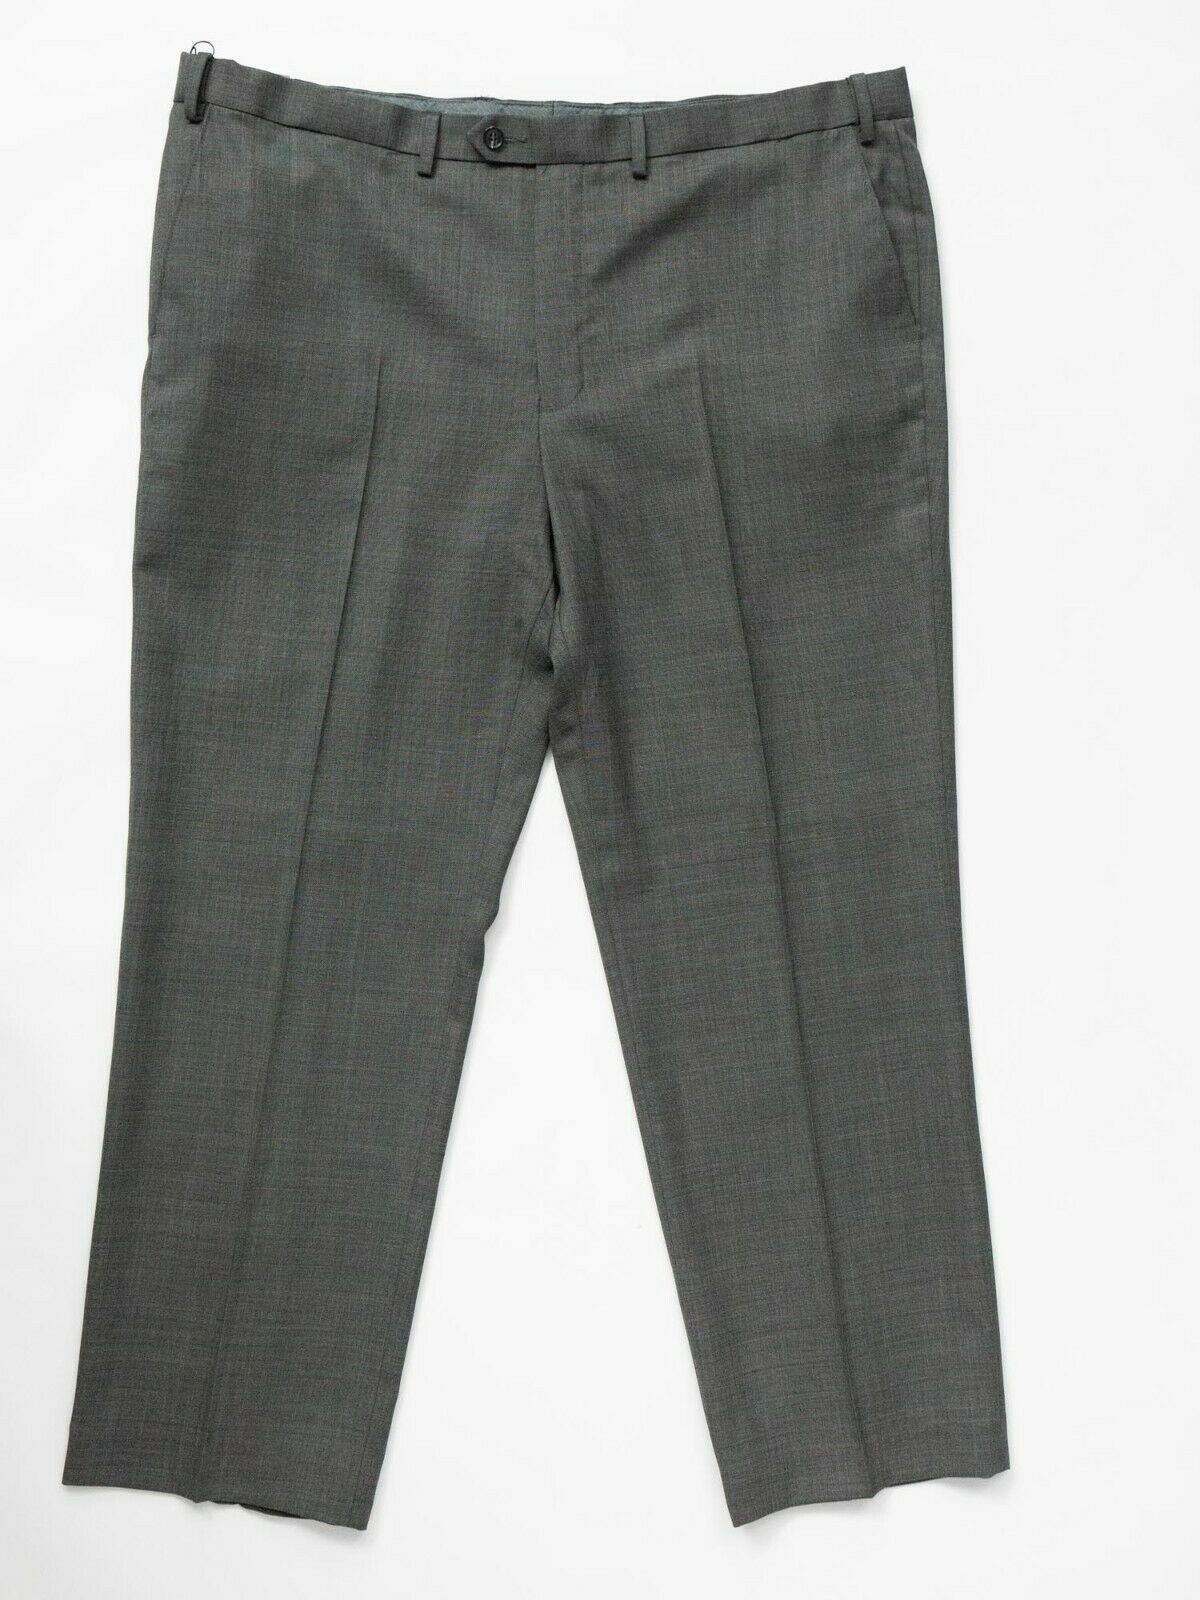 M&S Collection Trousers Regular Grey 42W 31L T17 3958/03193